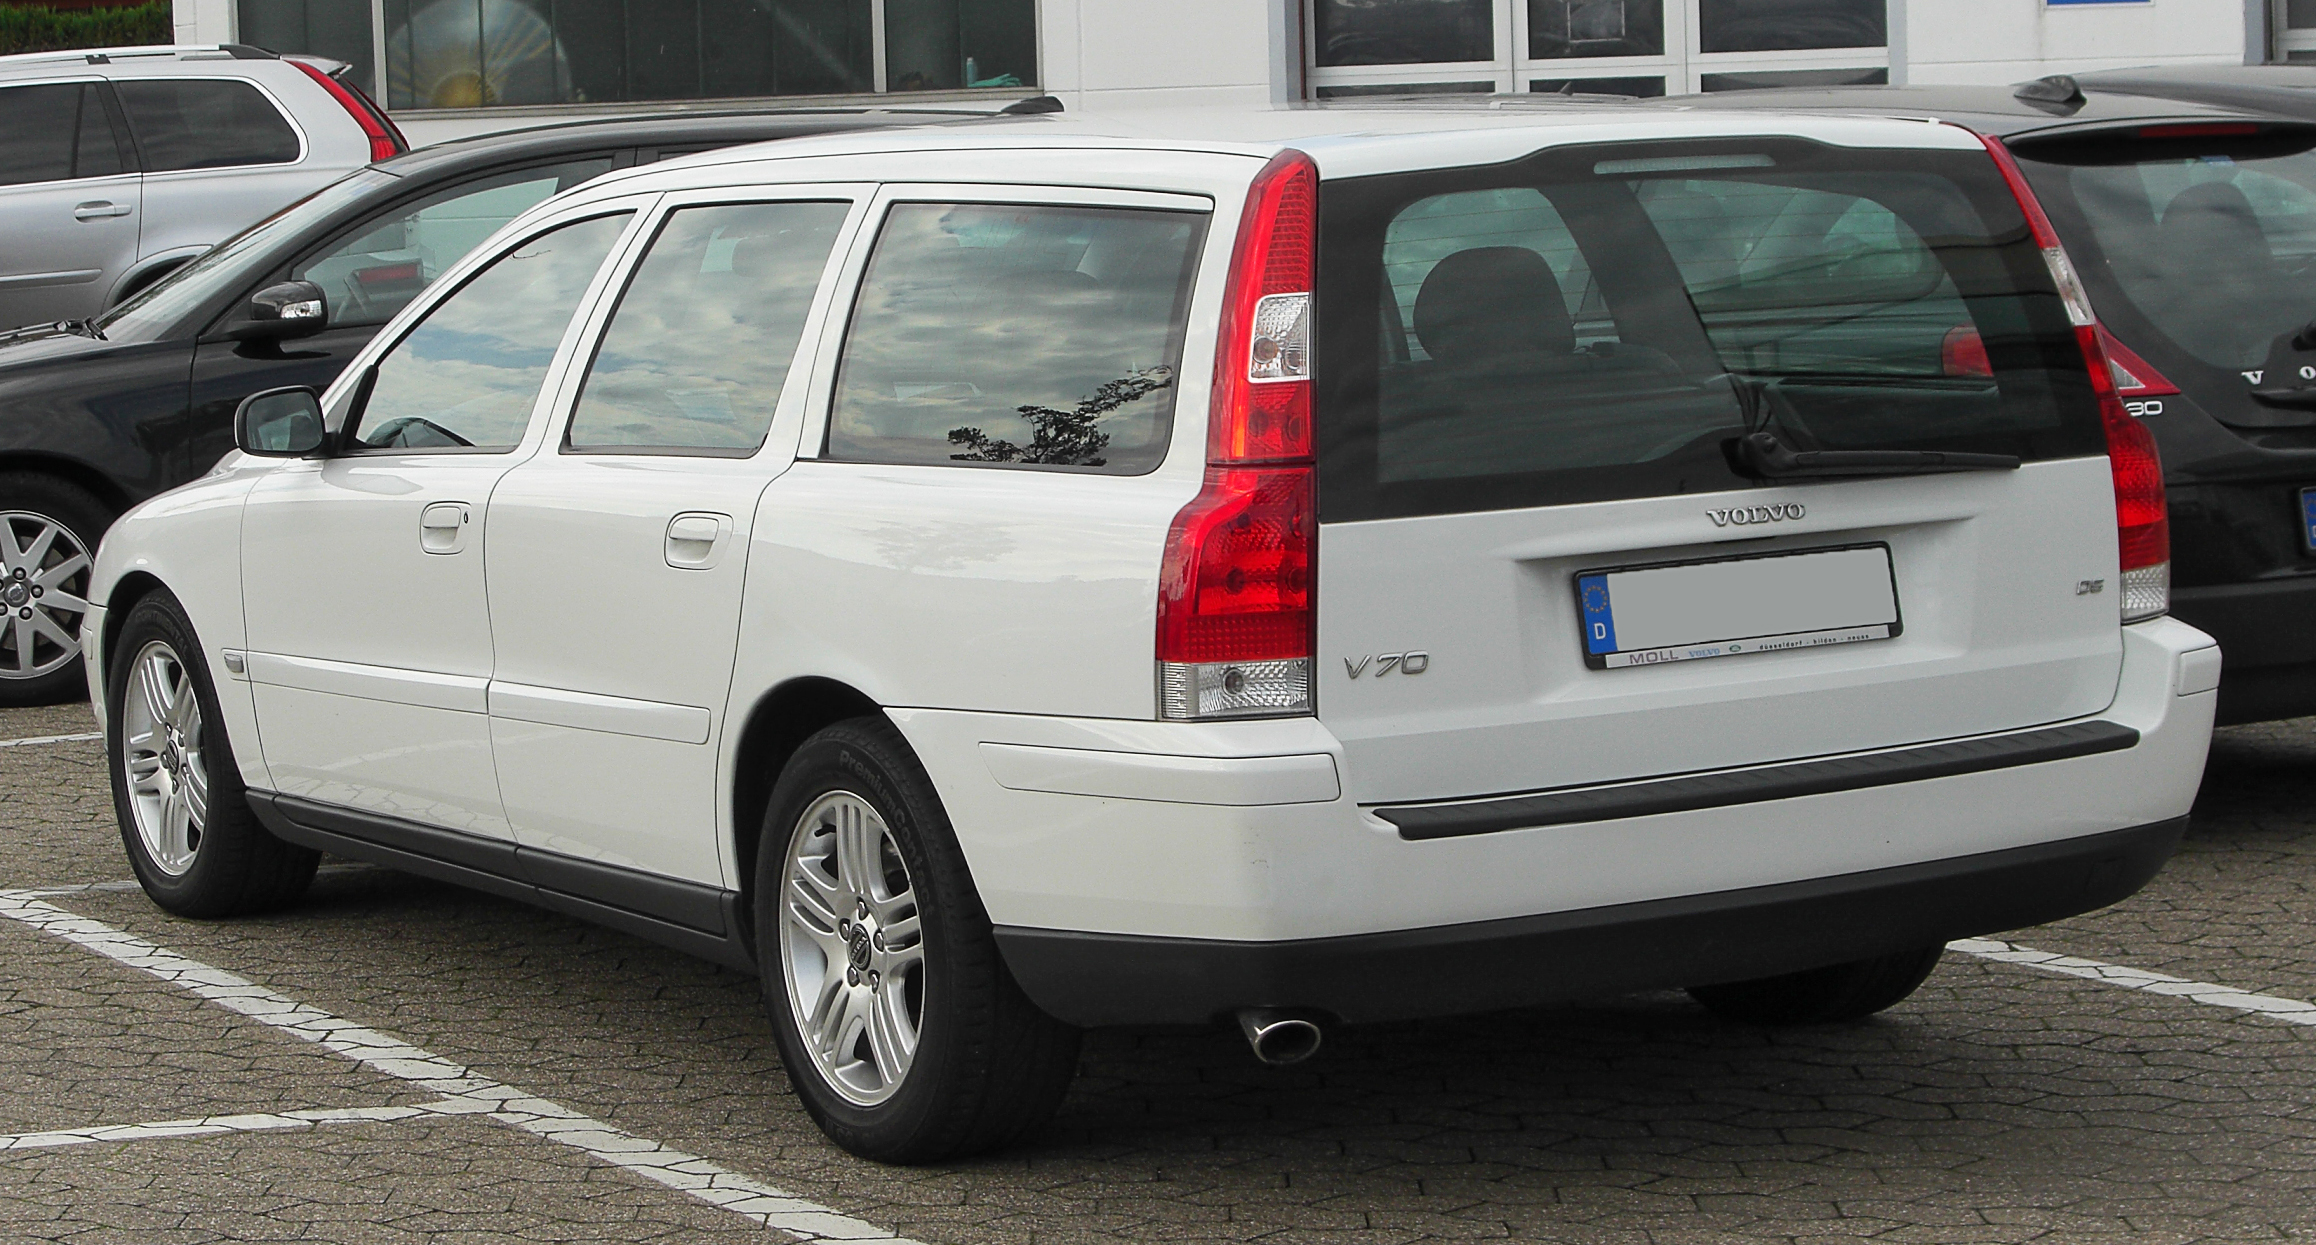 datei volvo v70 ii d5 facelift rear wikipedia. Black Bedroom Furniture Sets. Home Design Ideas